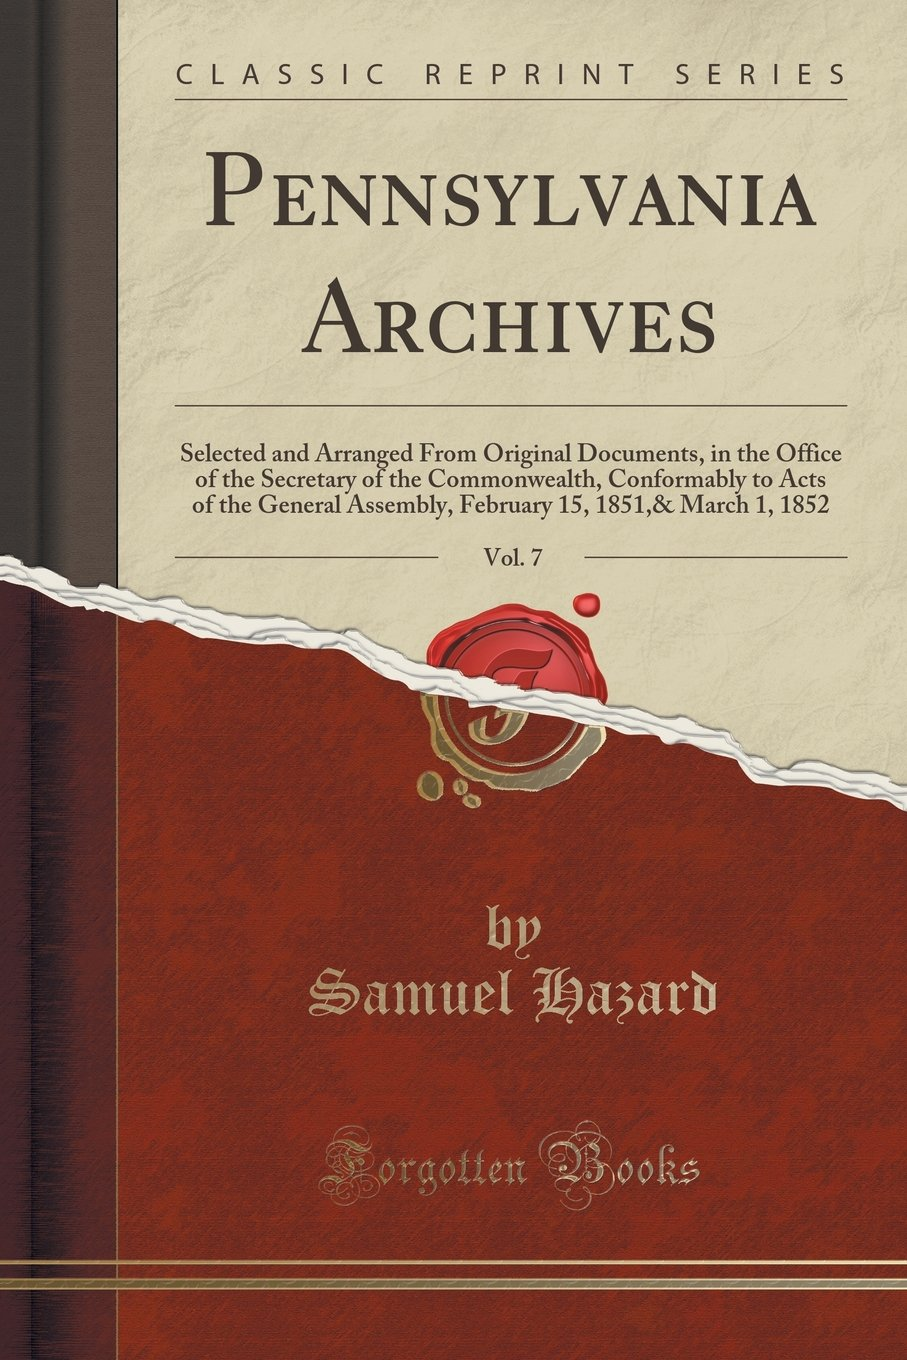 Pennsylvania Archives, Vol. 7: Selected and Arranged From Original Documents, in the Office of the Secretary of the Commonwealth, Conformably to Acts ... 15, 1851,& March 1, 1852 (Classic Reprint) PDF